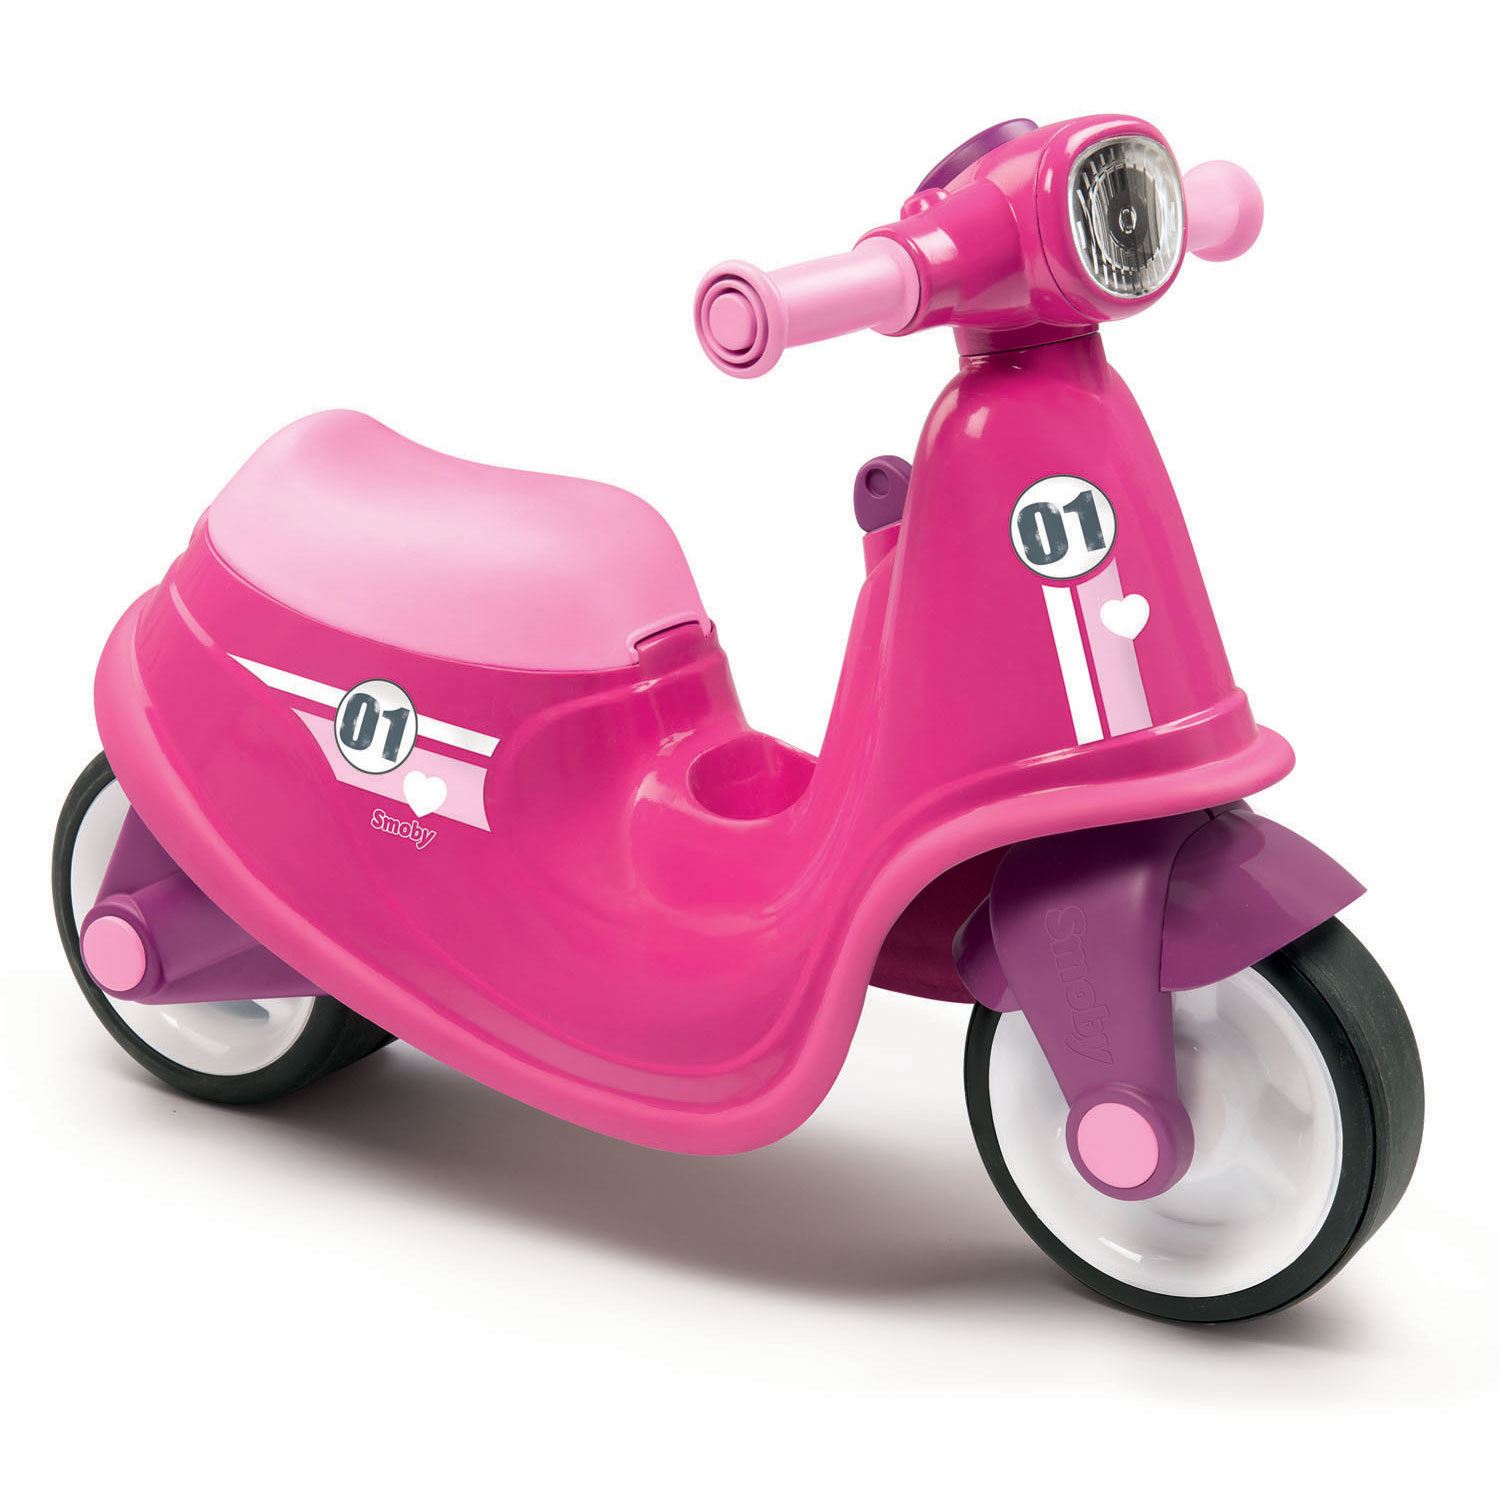 Smoby Scooter Ride On Roze